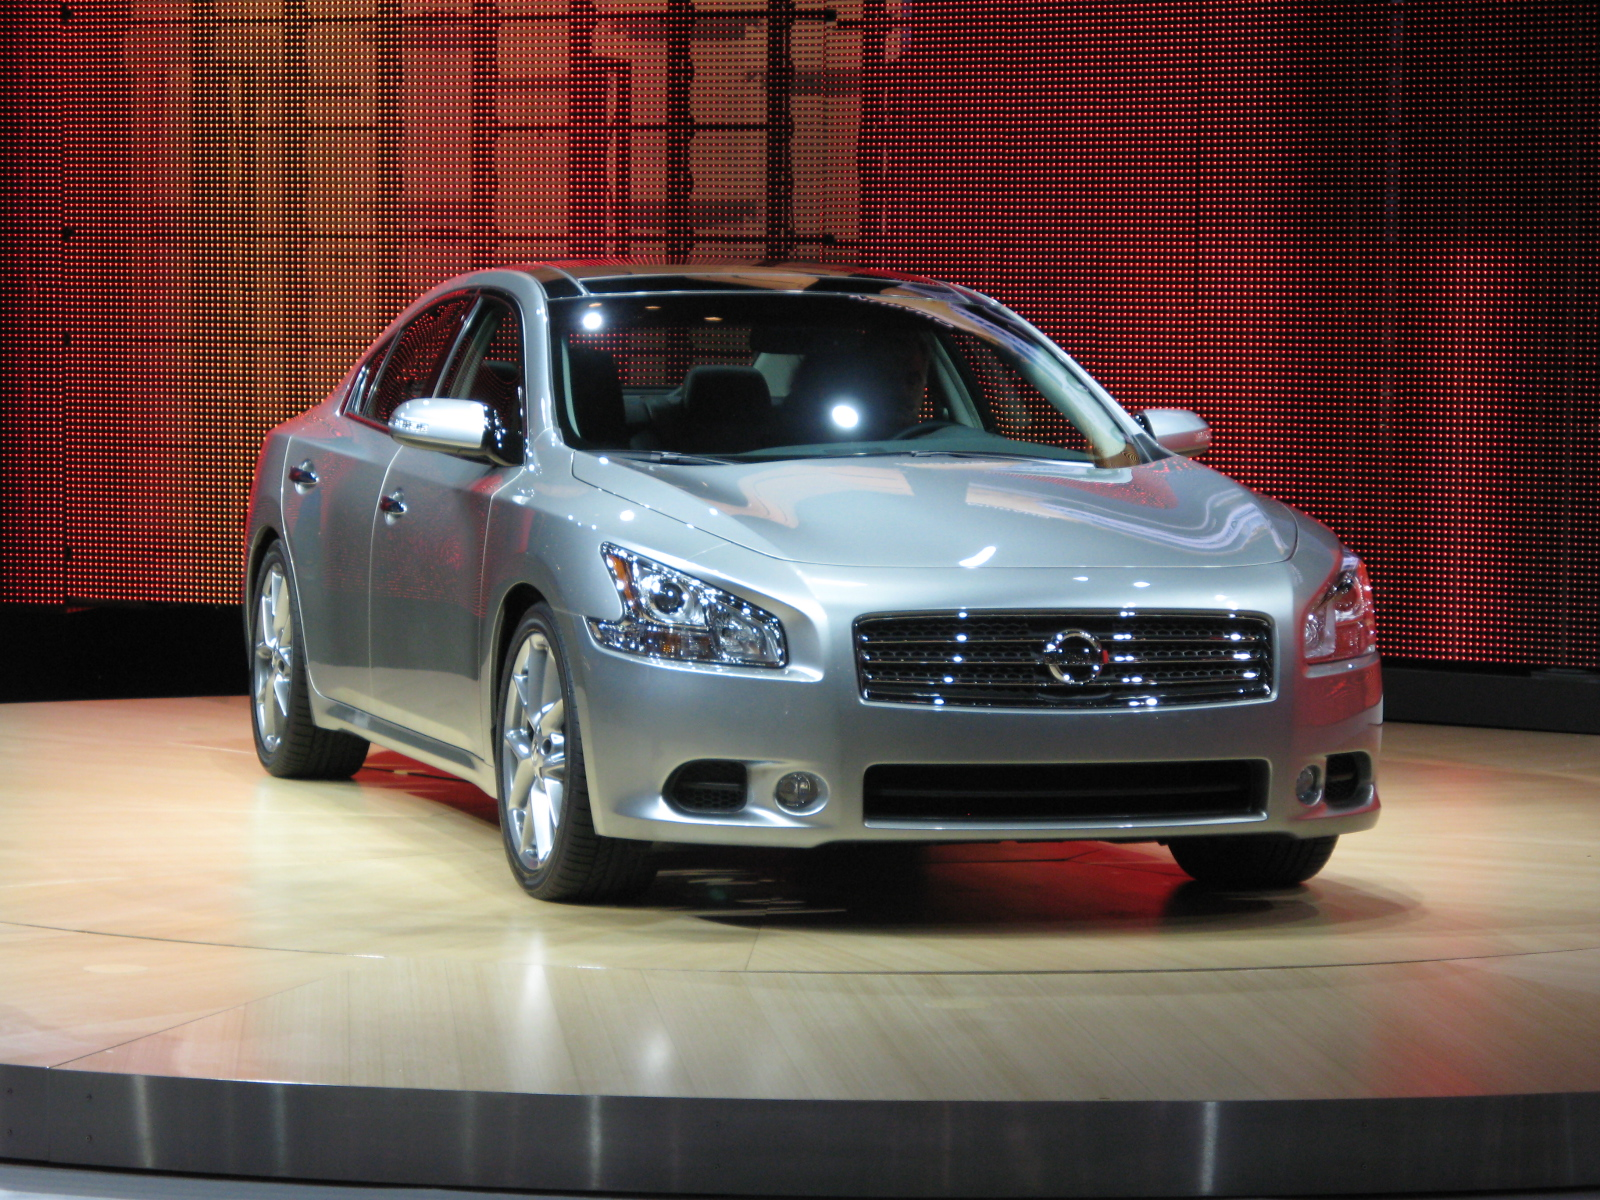 2009 Nissan Maxima Review - Top Speed